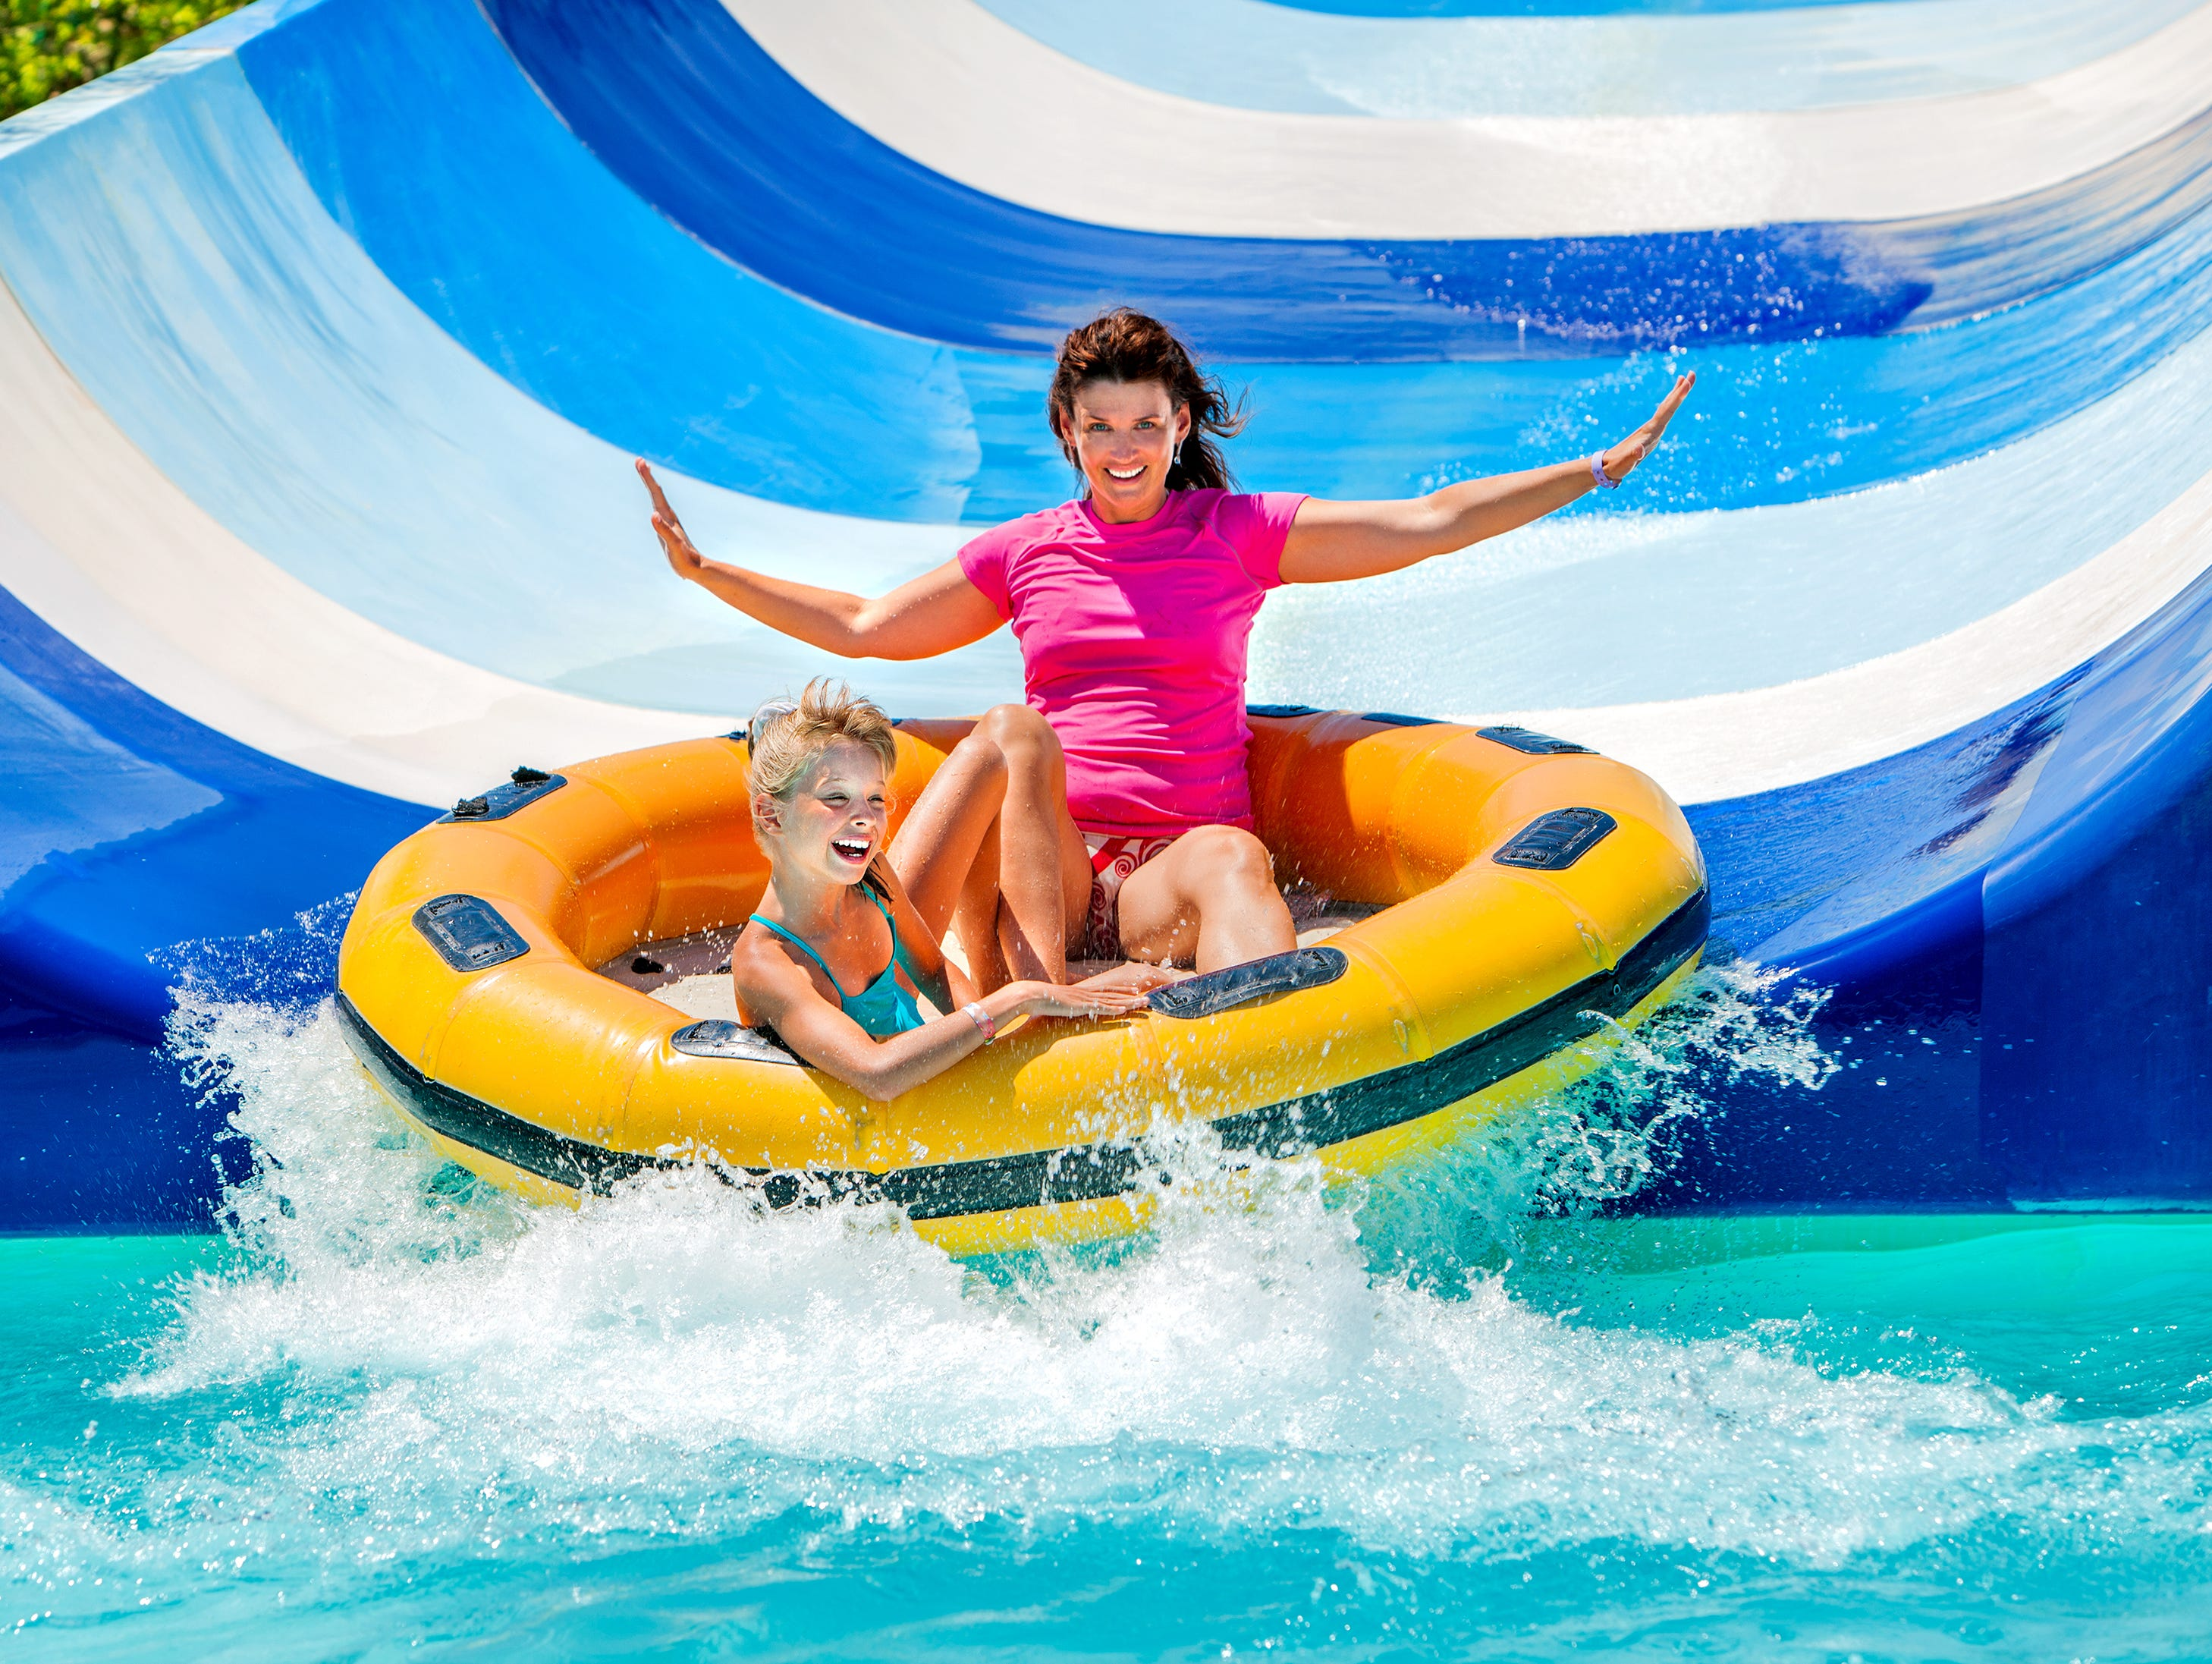 Members, take advantage of these discounted water park tickets this summer!